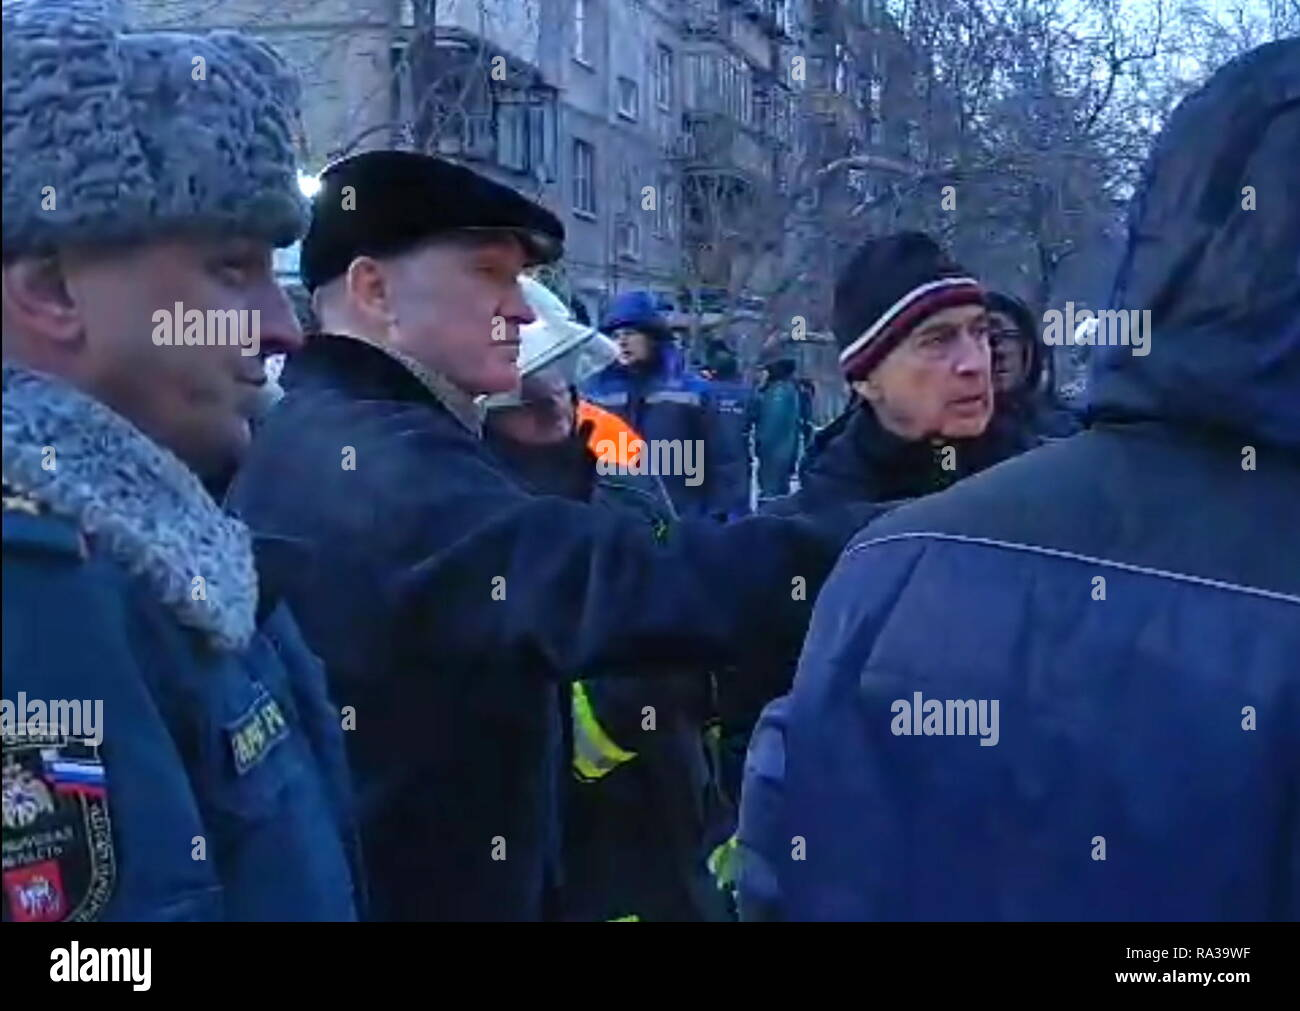 Magnitogorsk, Russia. 01st Jan, 2019. MAGNITOGORSK, RUSSIA - JANUARY 1, 2019: Chelyabinsk Region Governor Boris Dubrovsky (2nd L) at the site of an apartment block collapse. On December 31, 2018, a domestic gas explosion caused a partial collapse of the residential building at 164 Prospekt Karla Marksa Street killing eight people and leaving dozens missing. Video Screen Grab/Press Office of the Chelyabinsk Region Governor/TASS Credit: ITAR-TASS News Agency/Alamy Live News - Stock Image